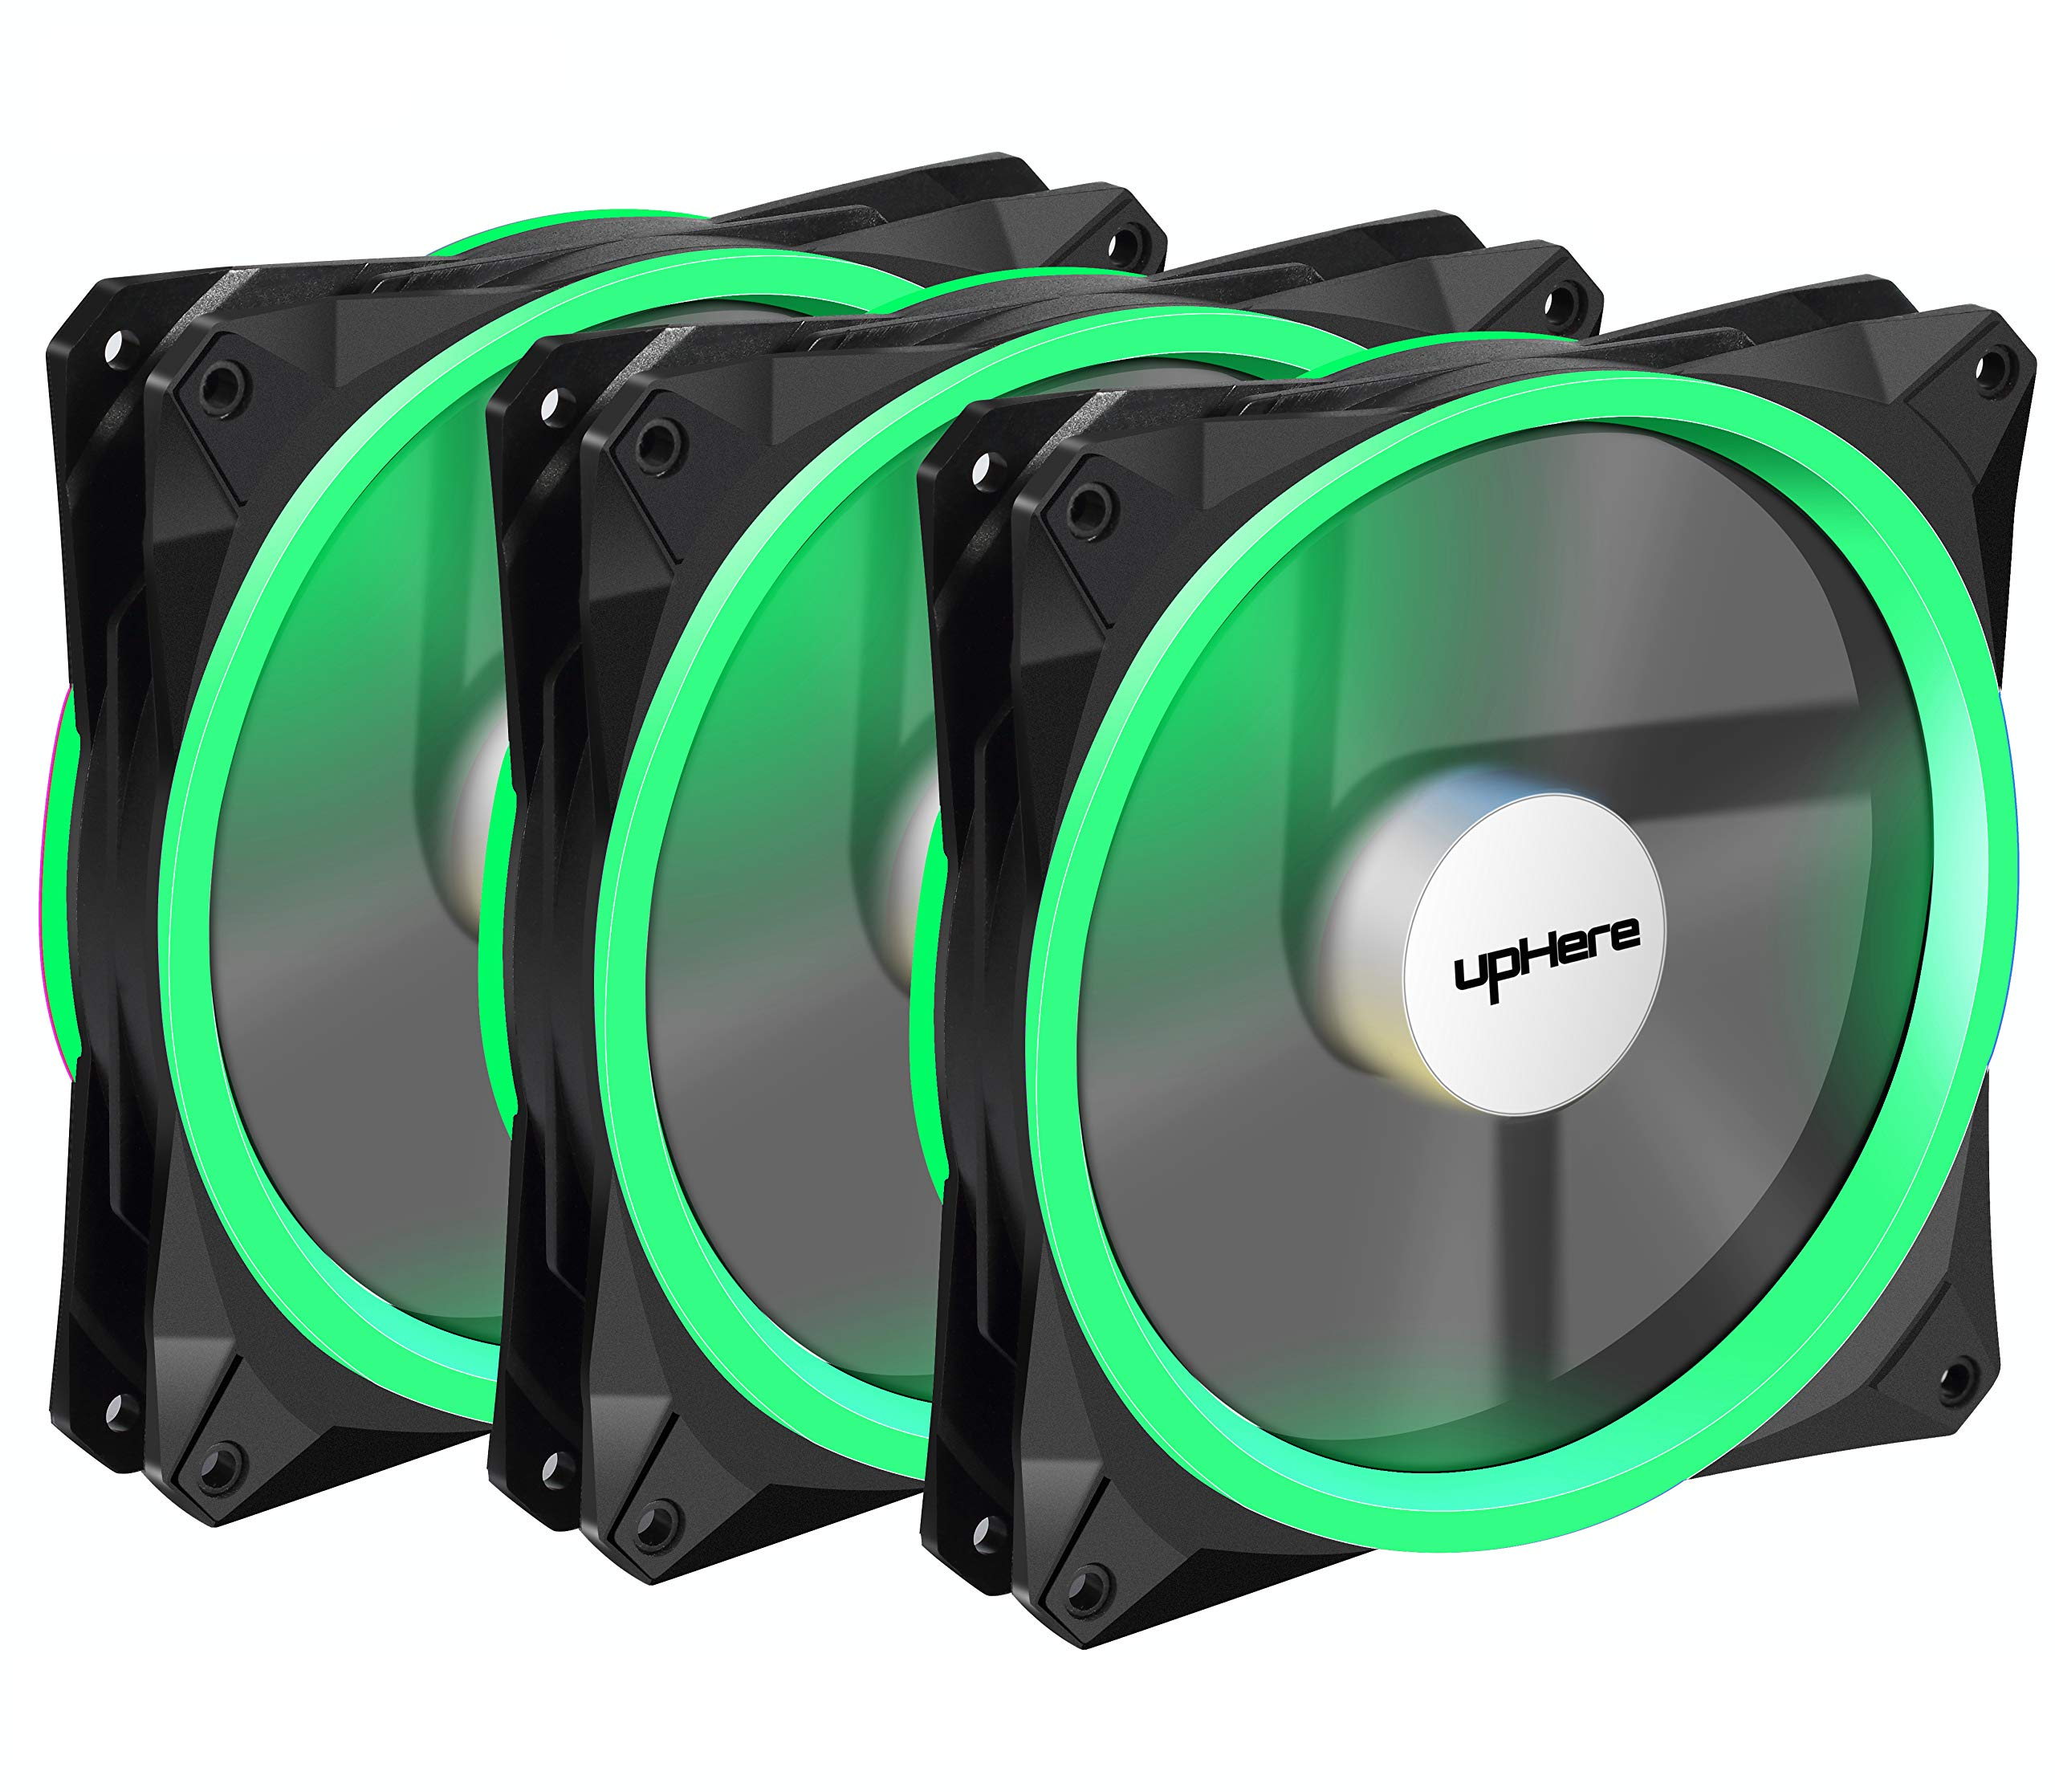 upHere 140mm case fan 3PACK Solar Eclipse Hydraulic Bearing quiet cooling case fan for computer MIRAGE Color LED fan 3 pin with Anti Vibration Rubber Pads(Green) 14CMG3-3